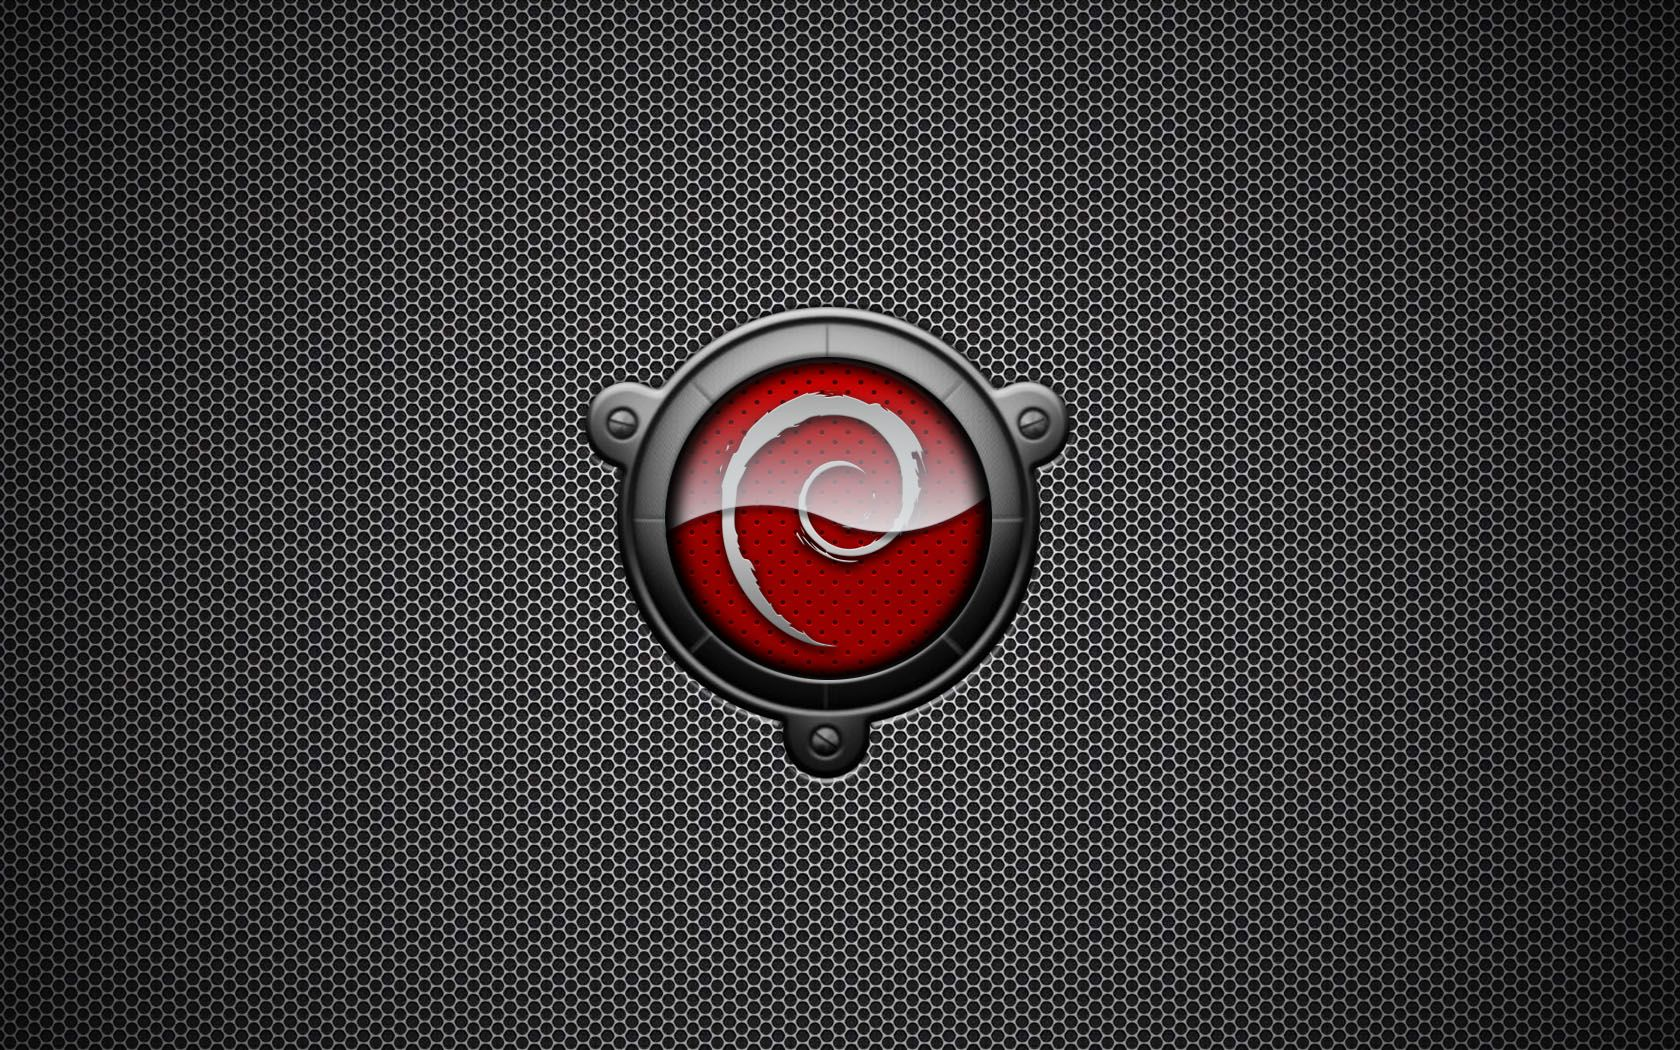 Linux Debian Symbol Awesome HD Wallpaper Background Picture Images 1680x1050